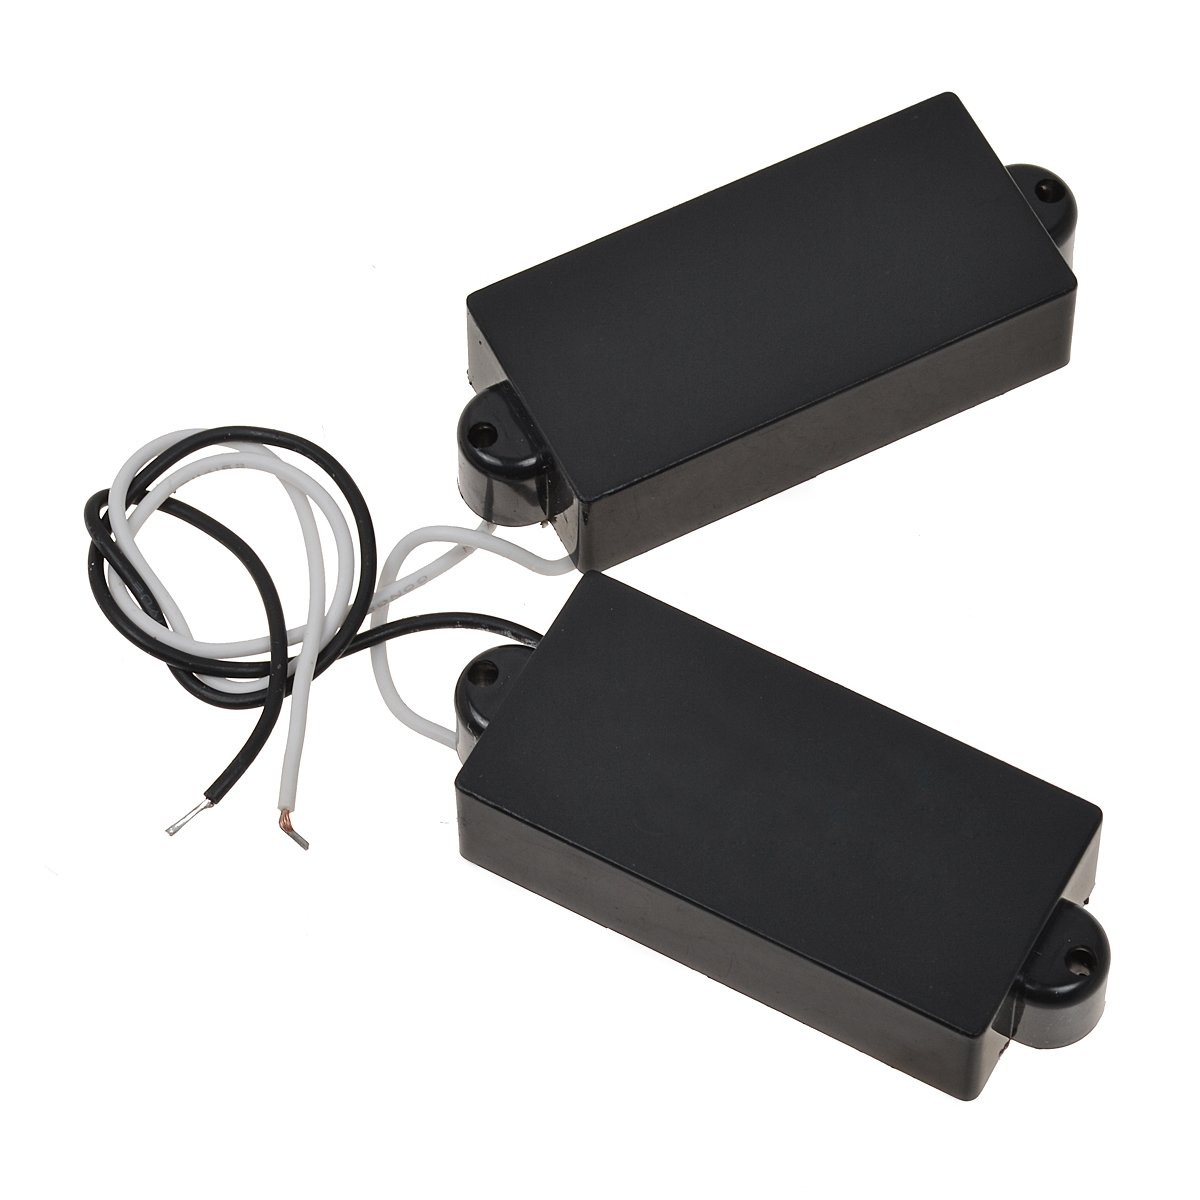 Black 4 String Electric Pickup Humbucker For Precision Bass Guitar 1 Pair From Kmise (MI0658)